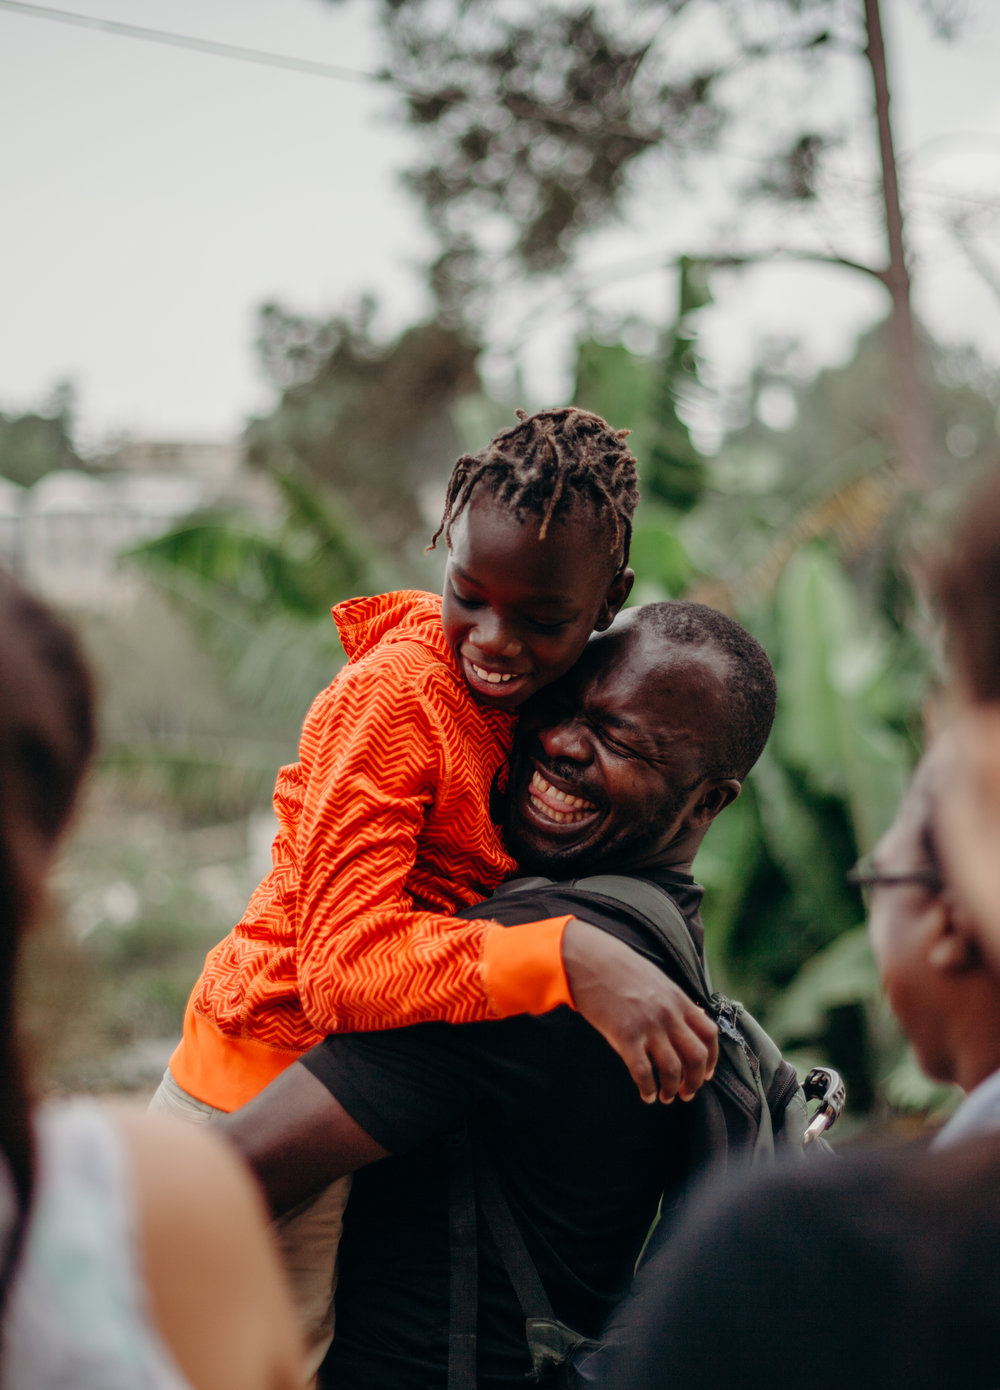 Dinel, the man who first took Alex to the children's home, swept him up in his arms - elated to see him grown and well.